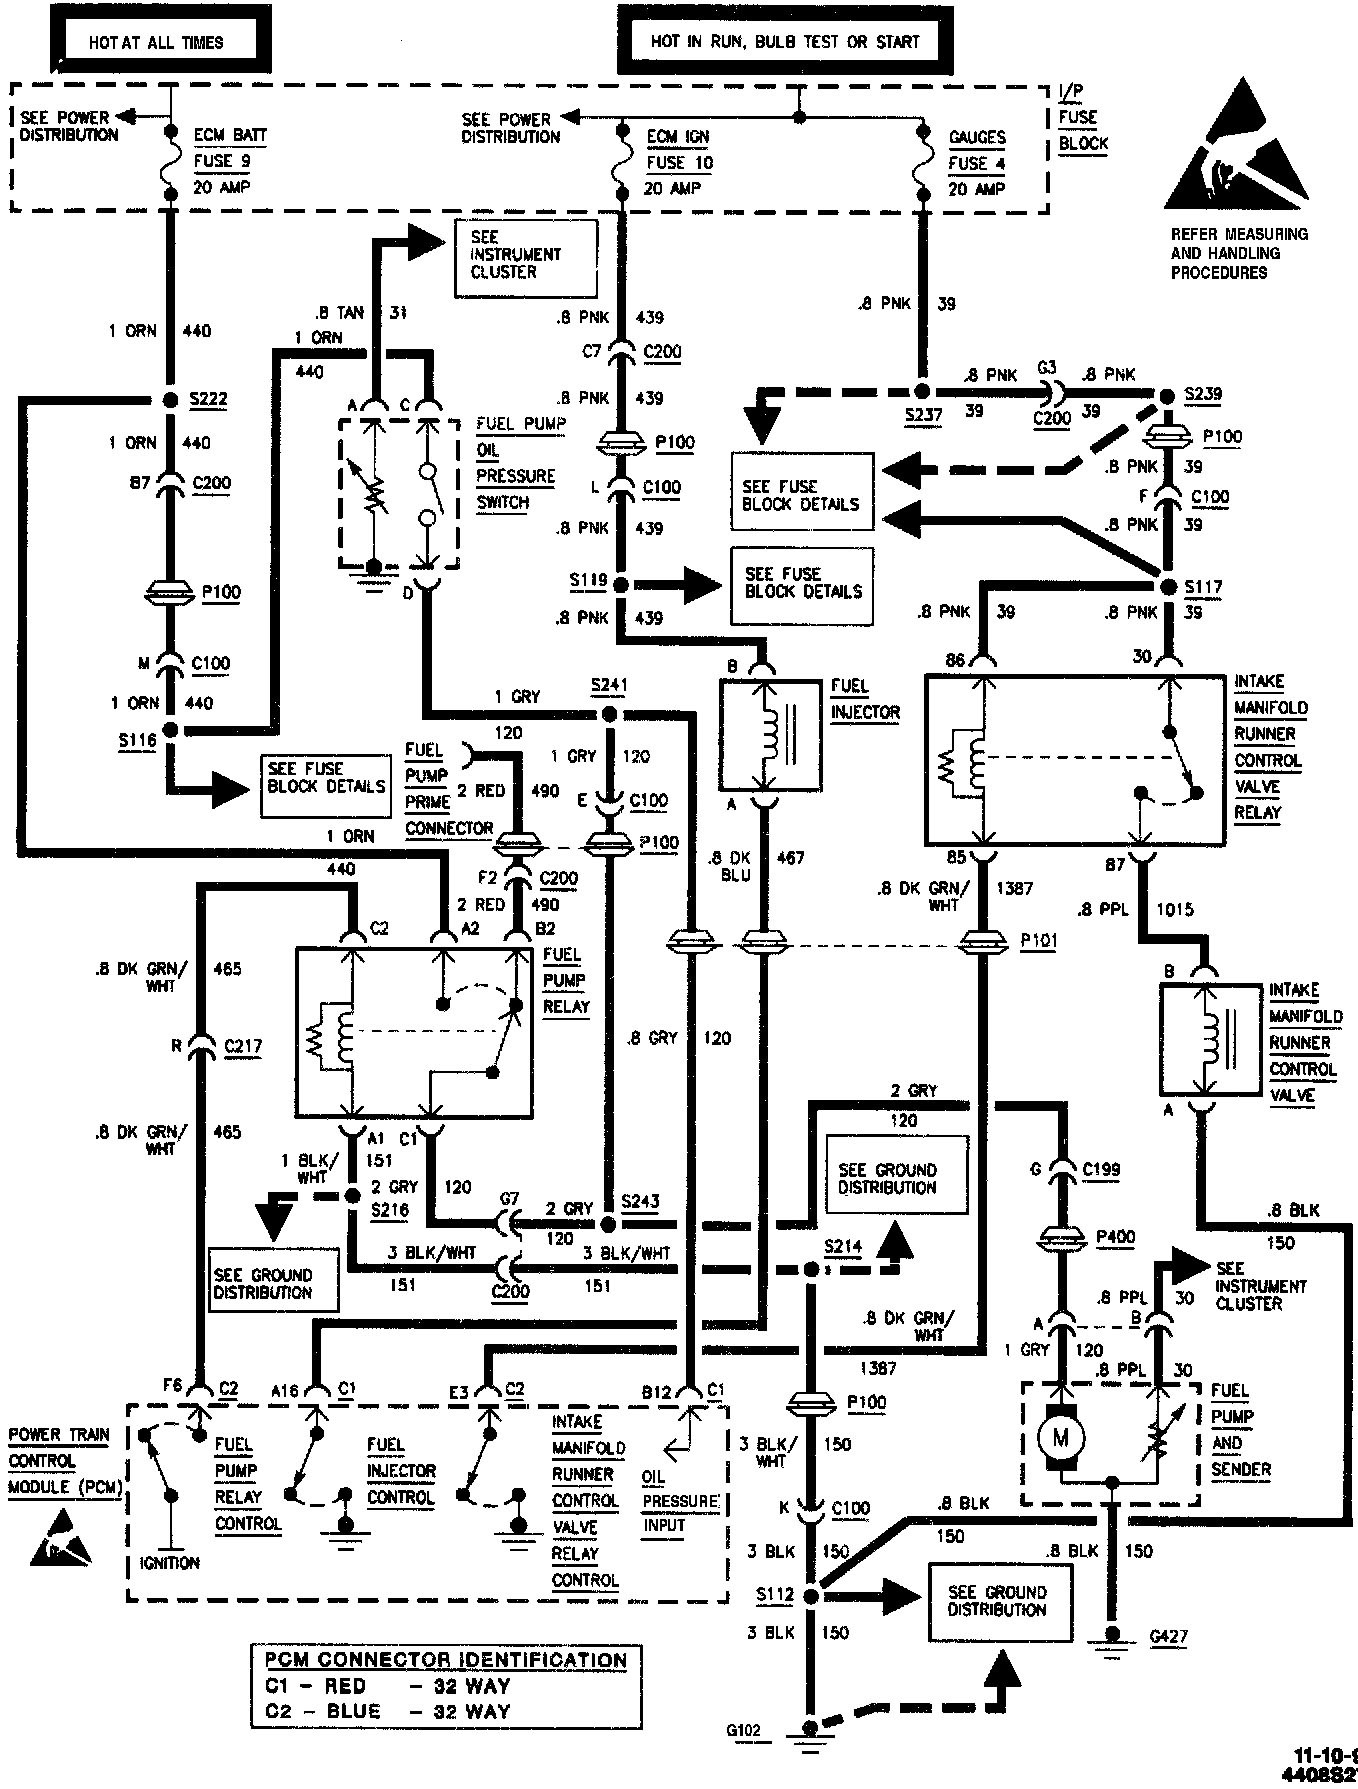 Wiring diagram for an electric fuel pump and relay 98 ls1 to 94